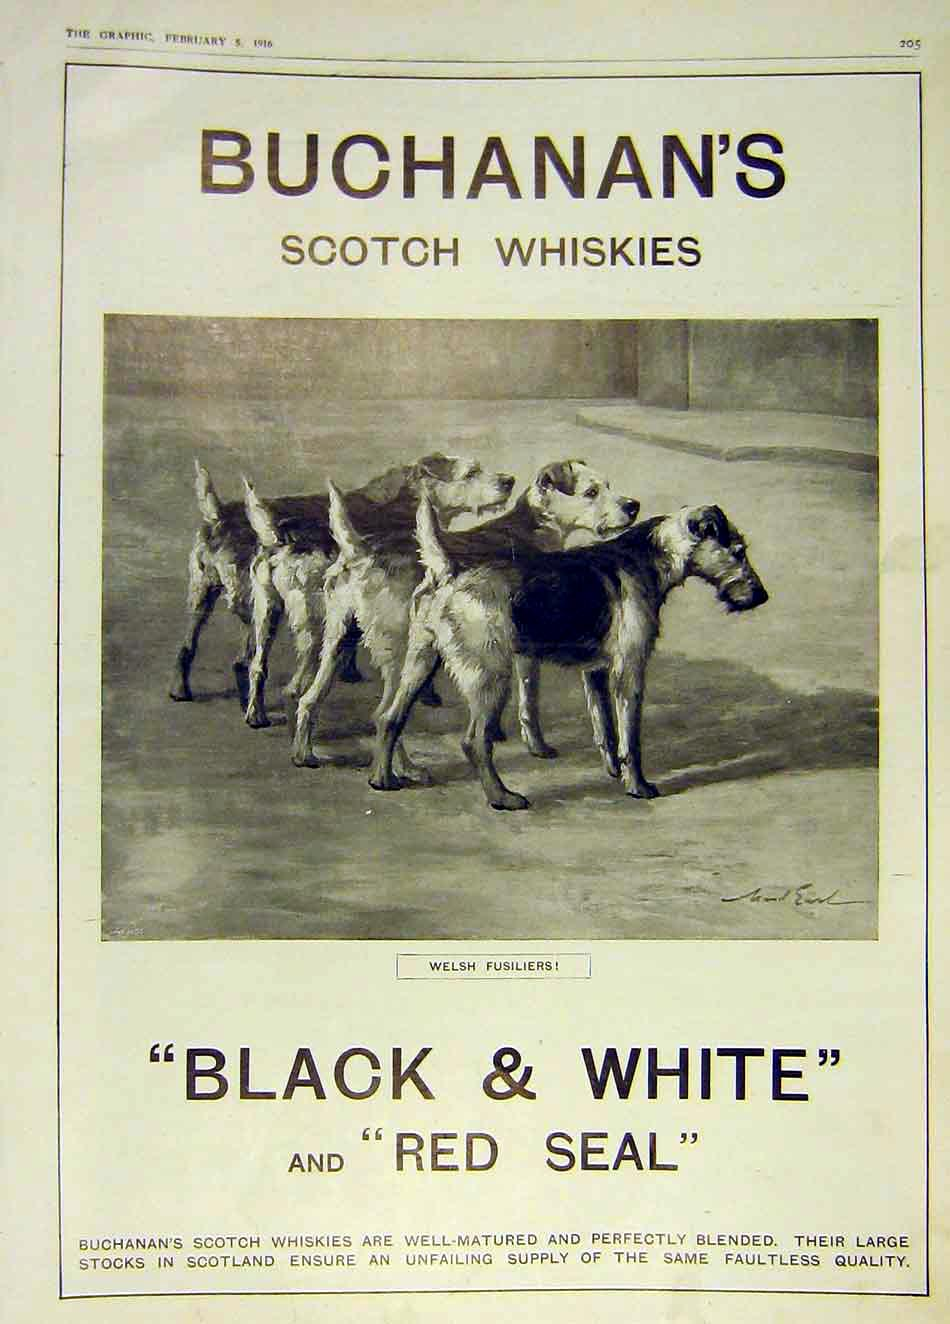 Print Scotch Whiskies Buchanan Welsh Fusiliers 1916 05Ddd0 Old Original